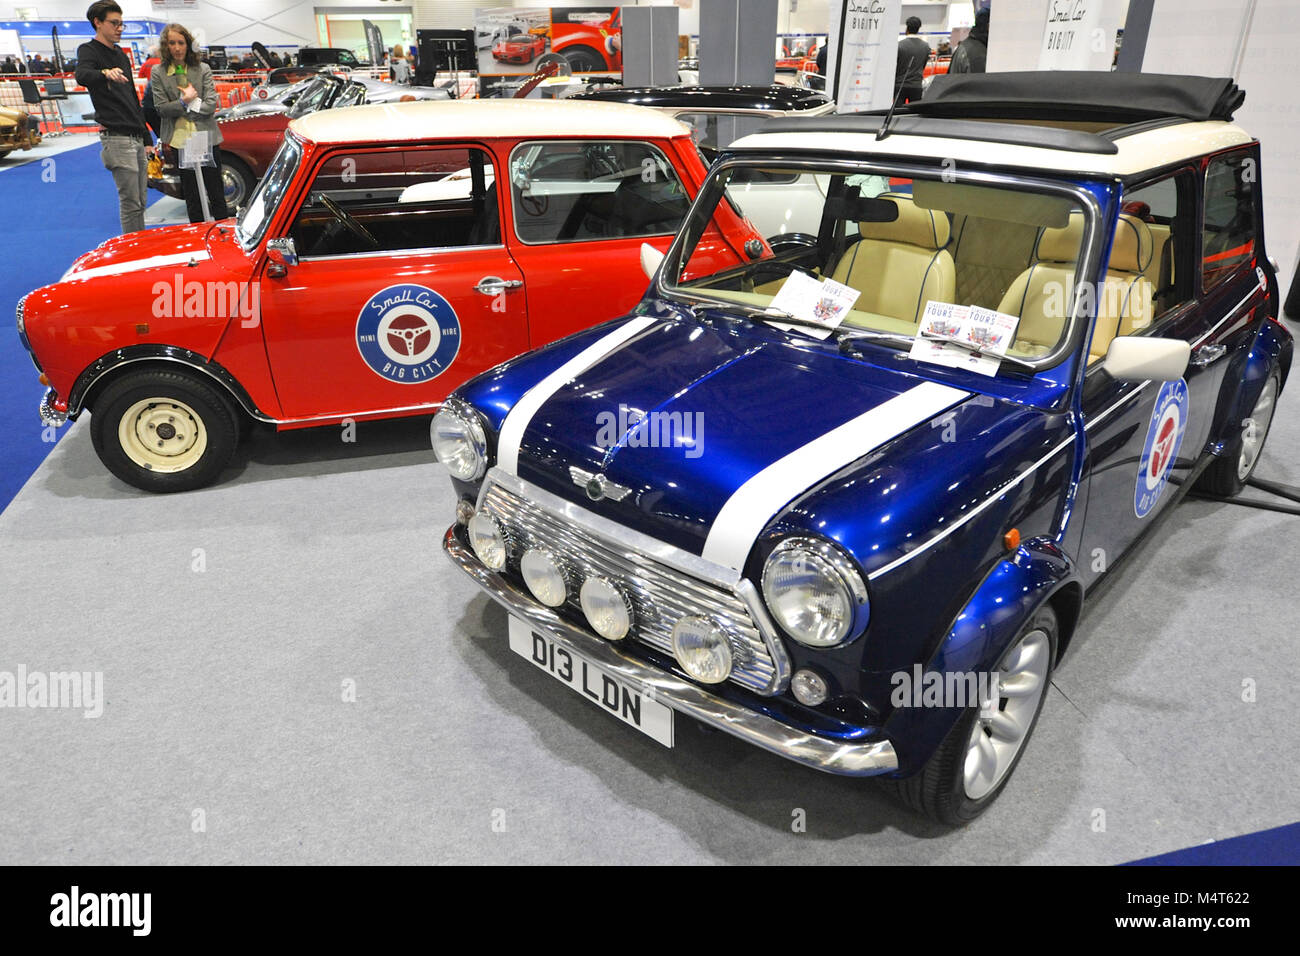 Vintage Minis On Display At The London Classic Car Show Which Is - London classic car show